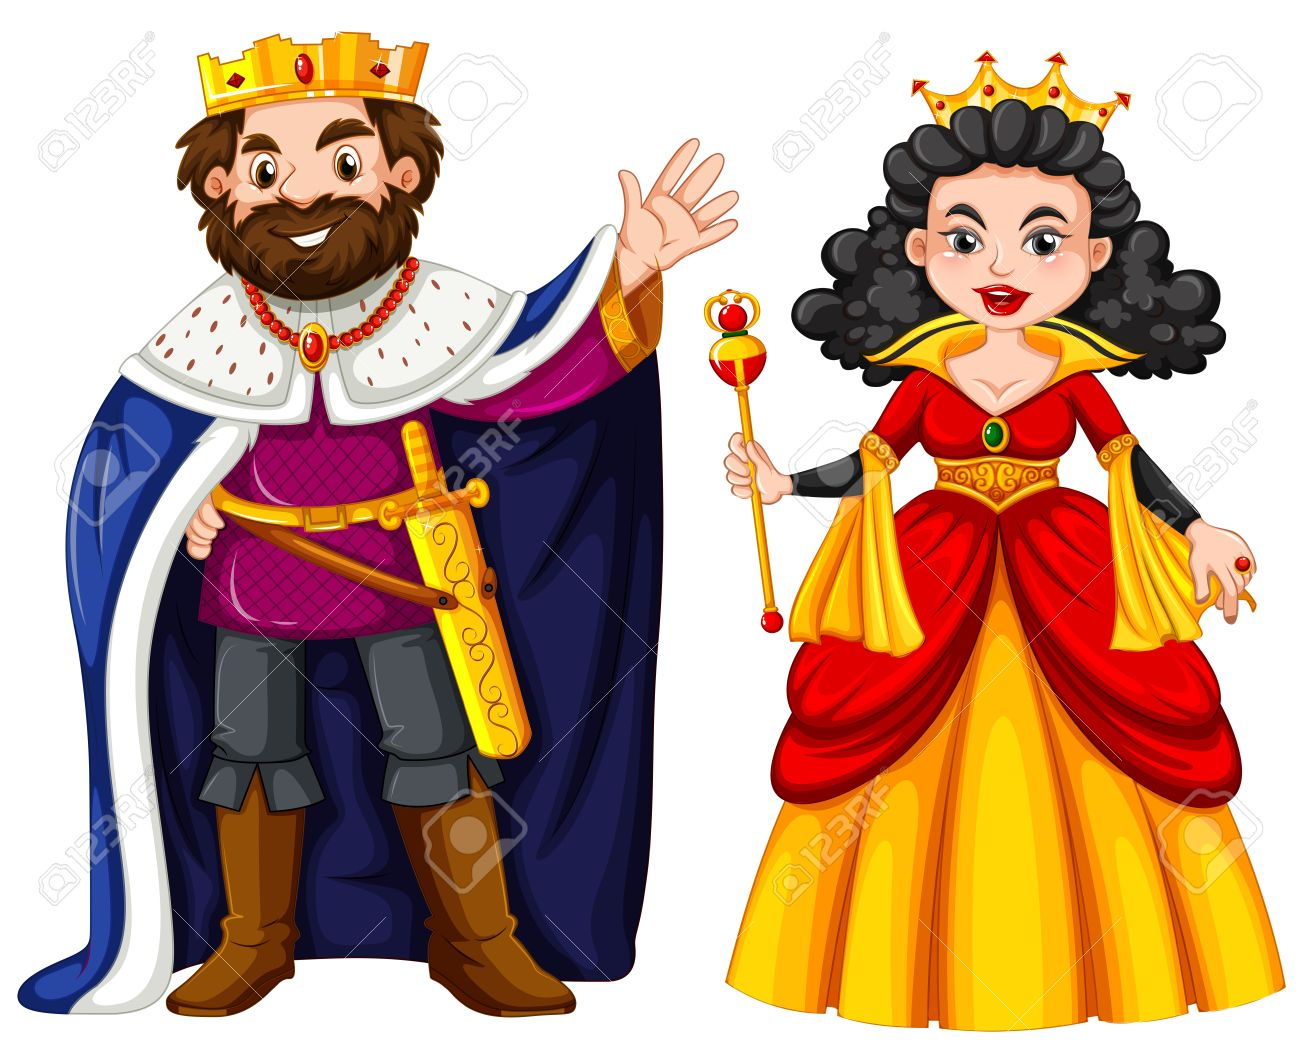 Kind clipart queen.